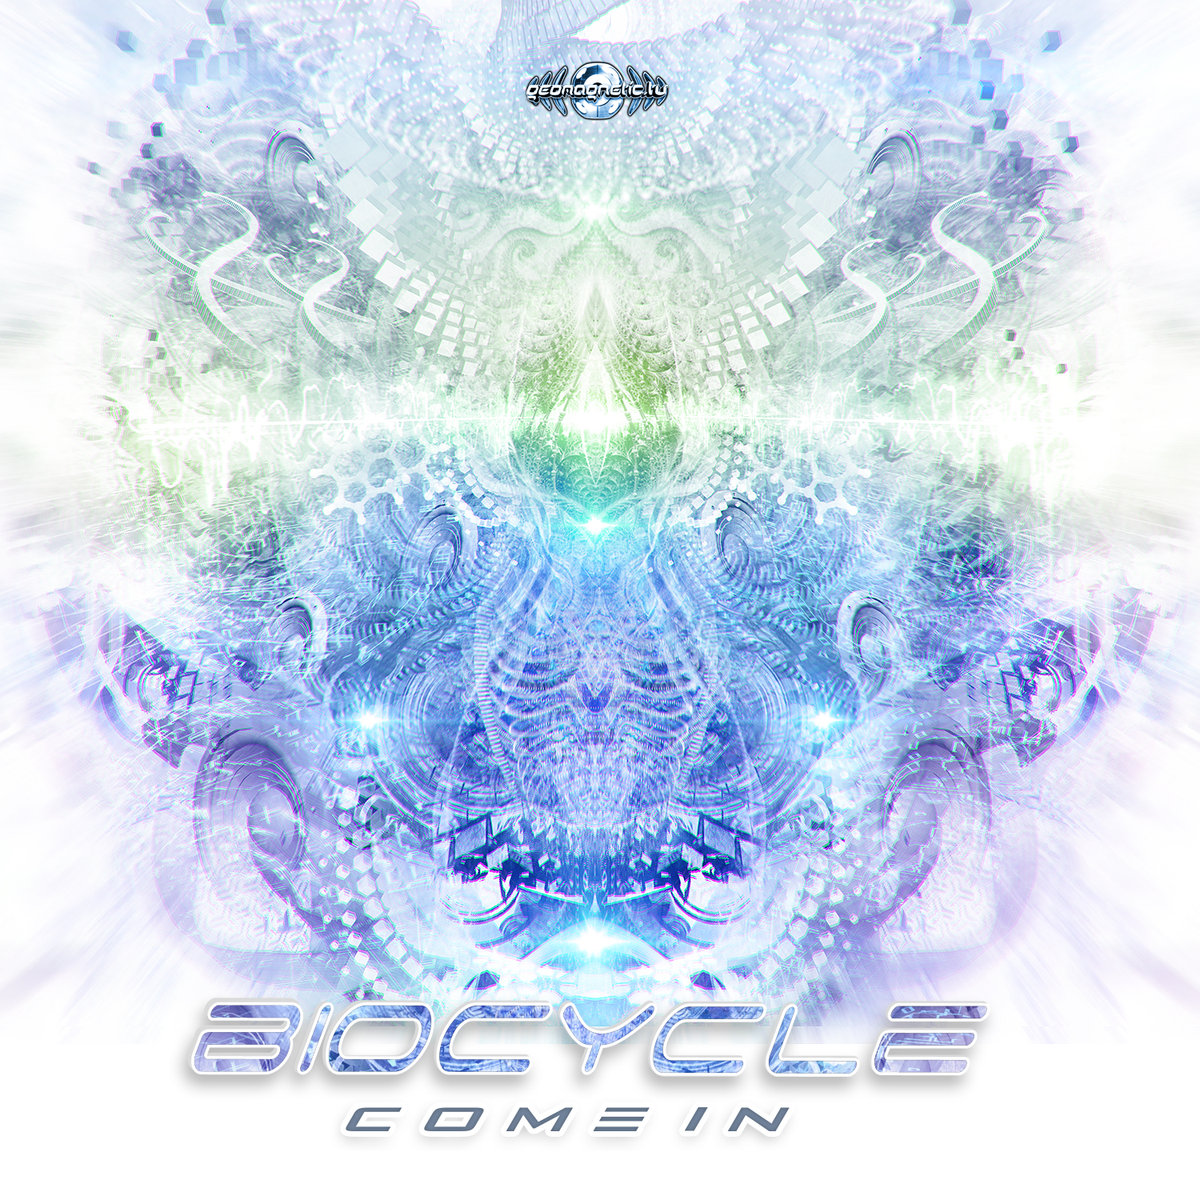 Biocycle - Future Gate @ 'Come In' album (electronic, geomagnetic)